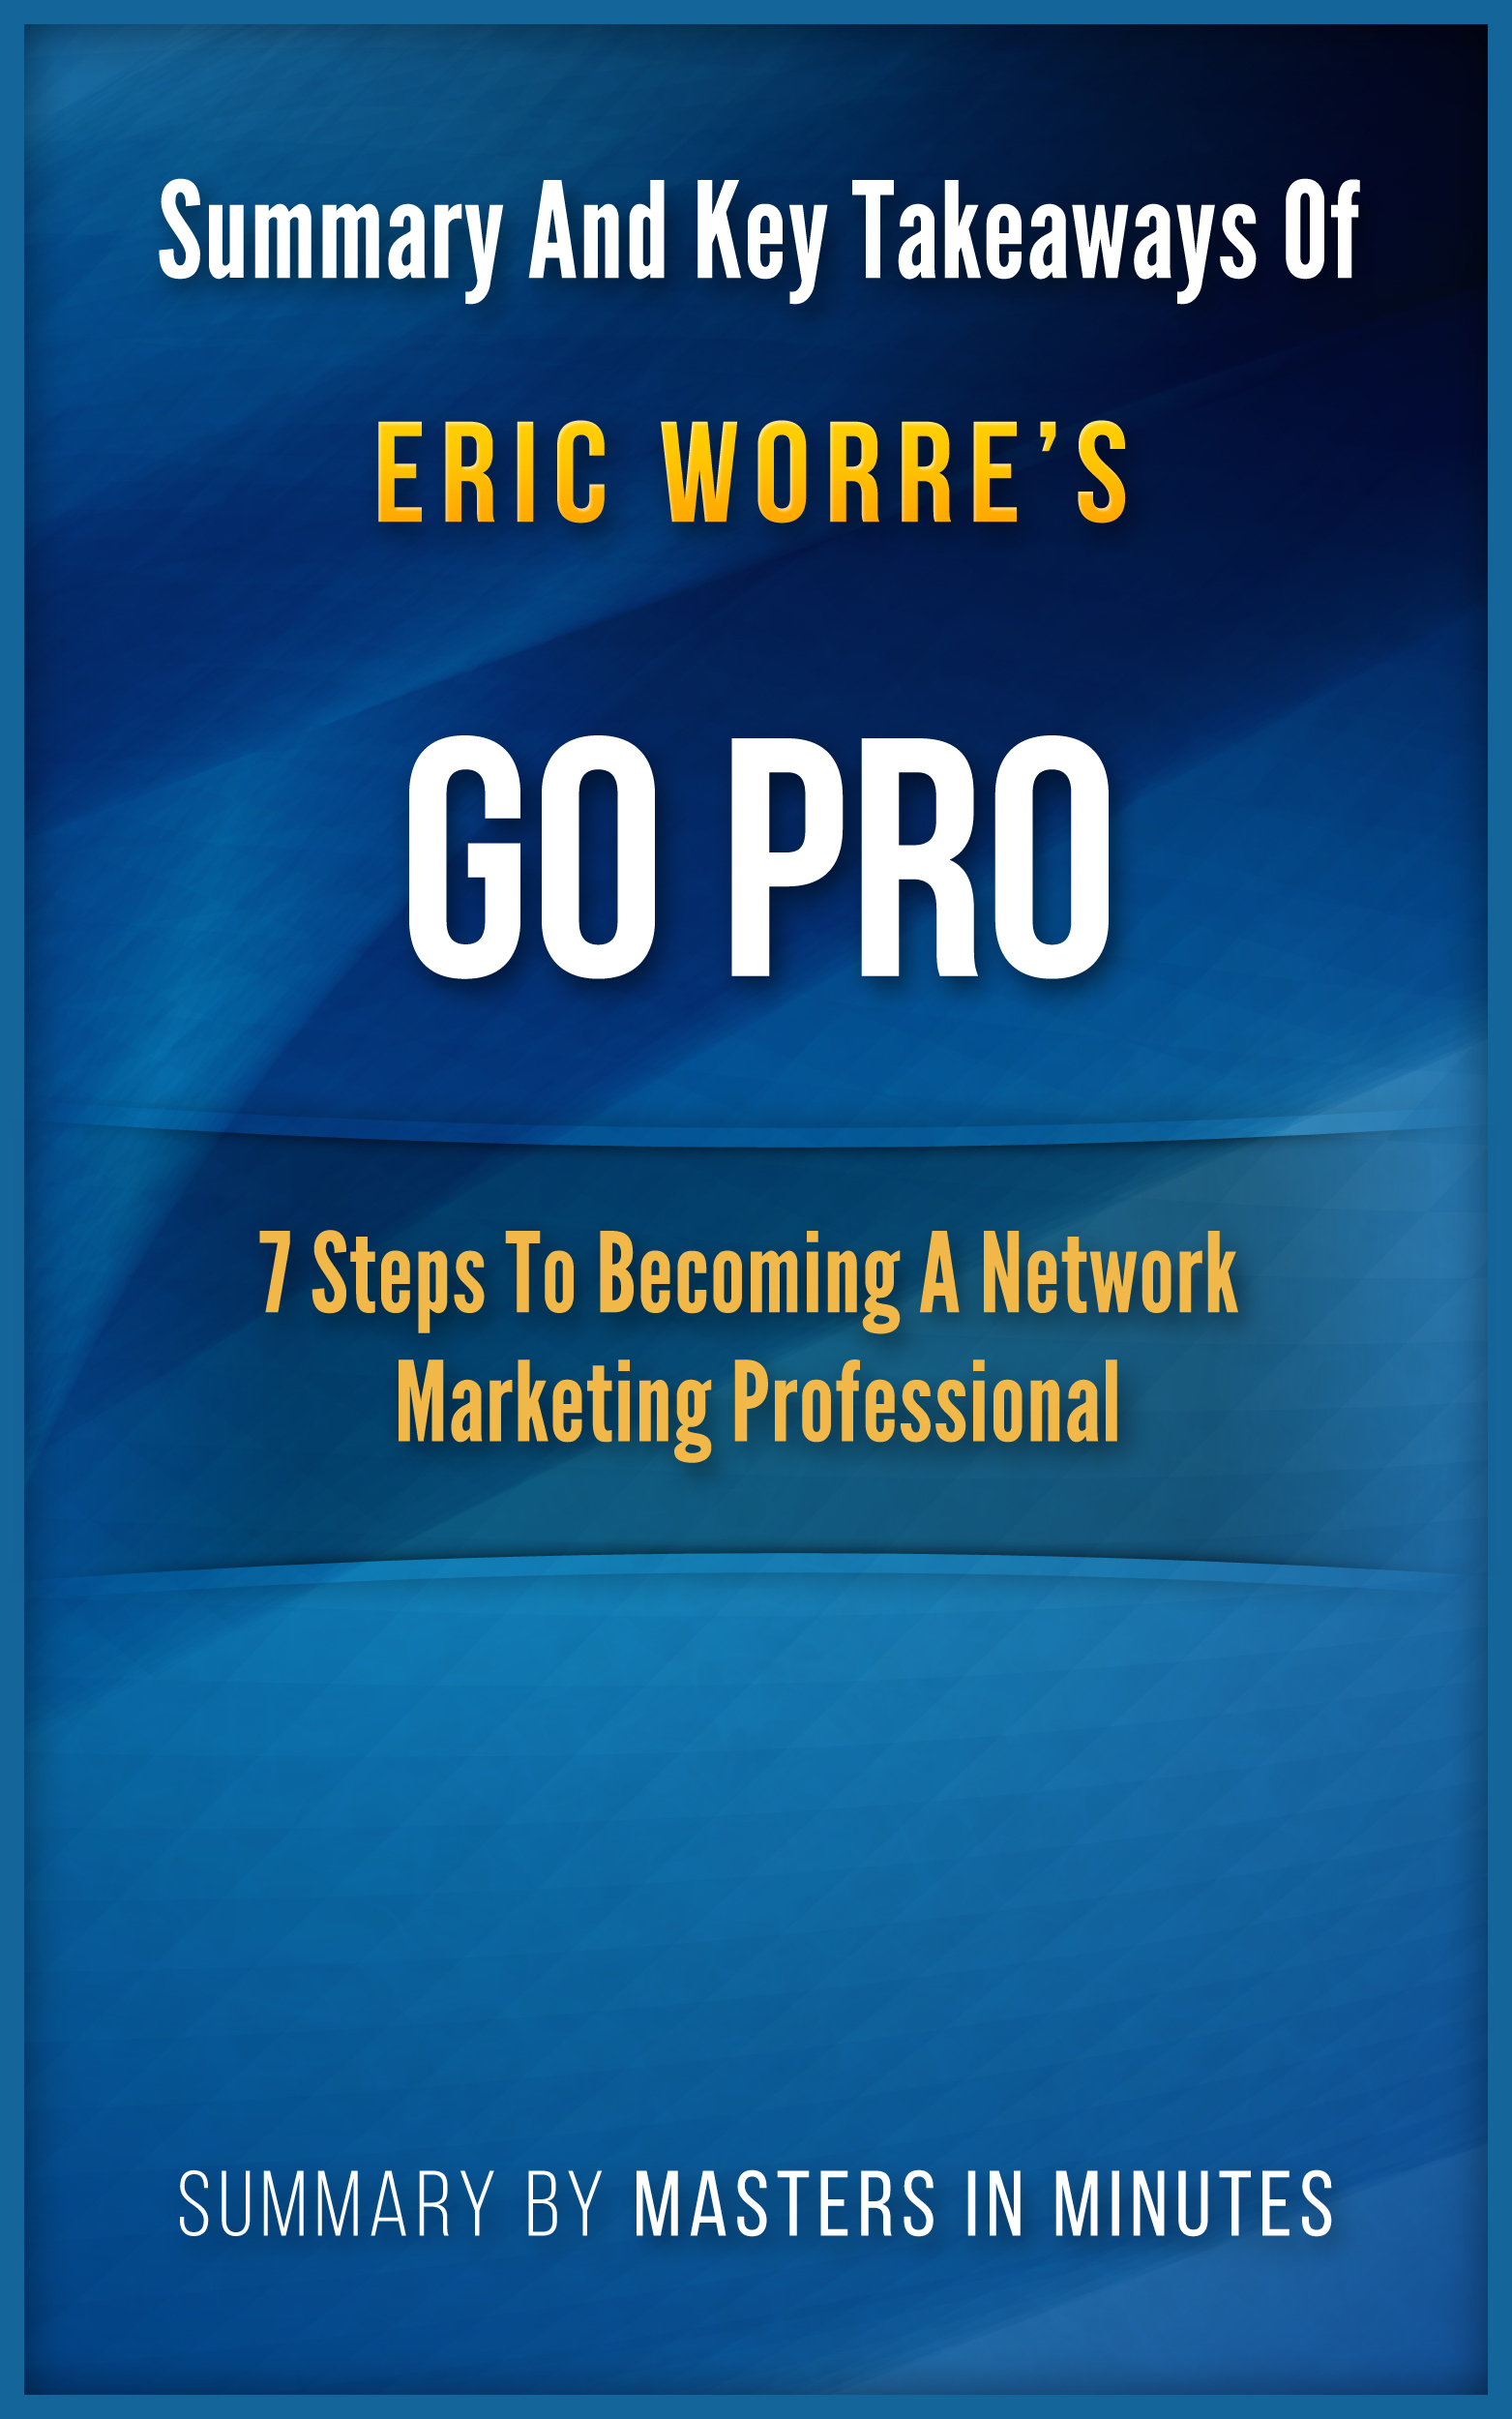 Go Pro: 7 Steps to Becoming a Network Marketing Professional | Summary & Key Takeaways In 20 Minutes